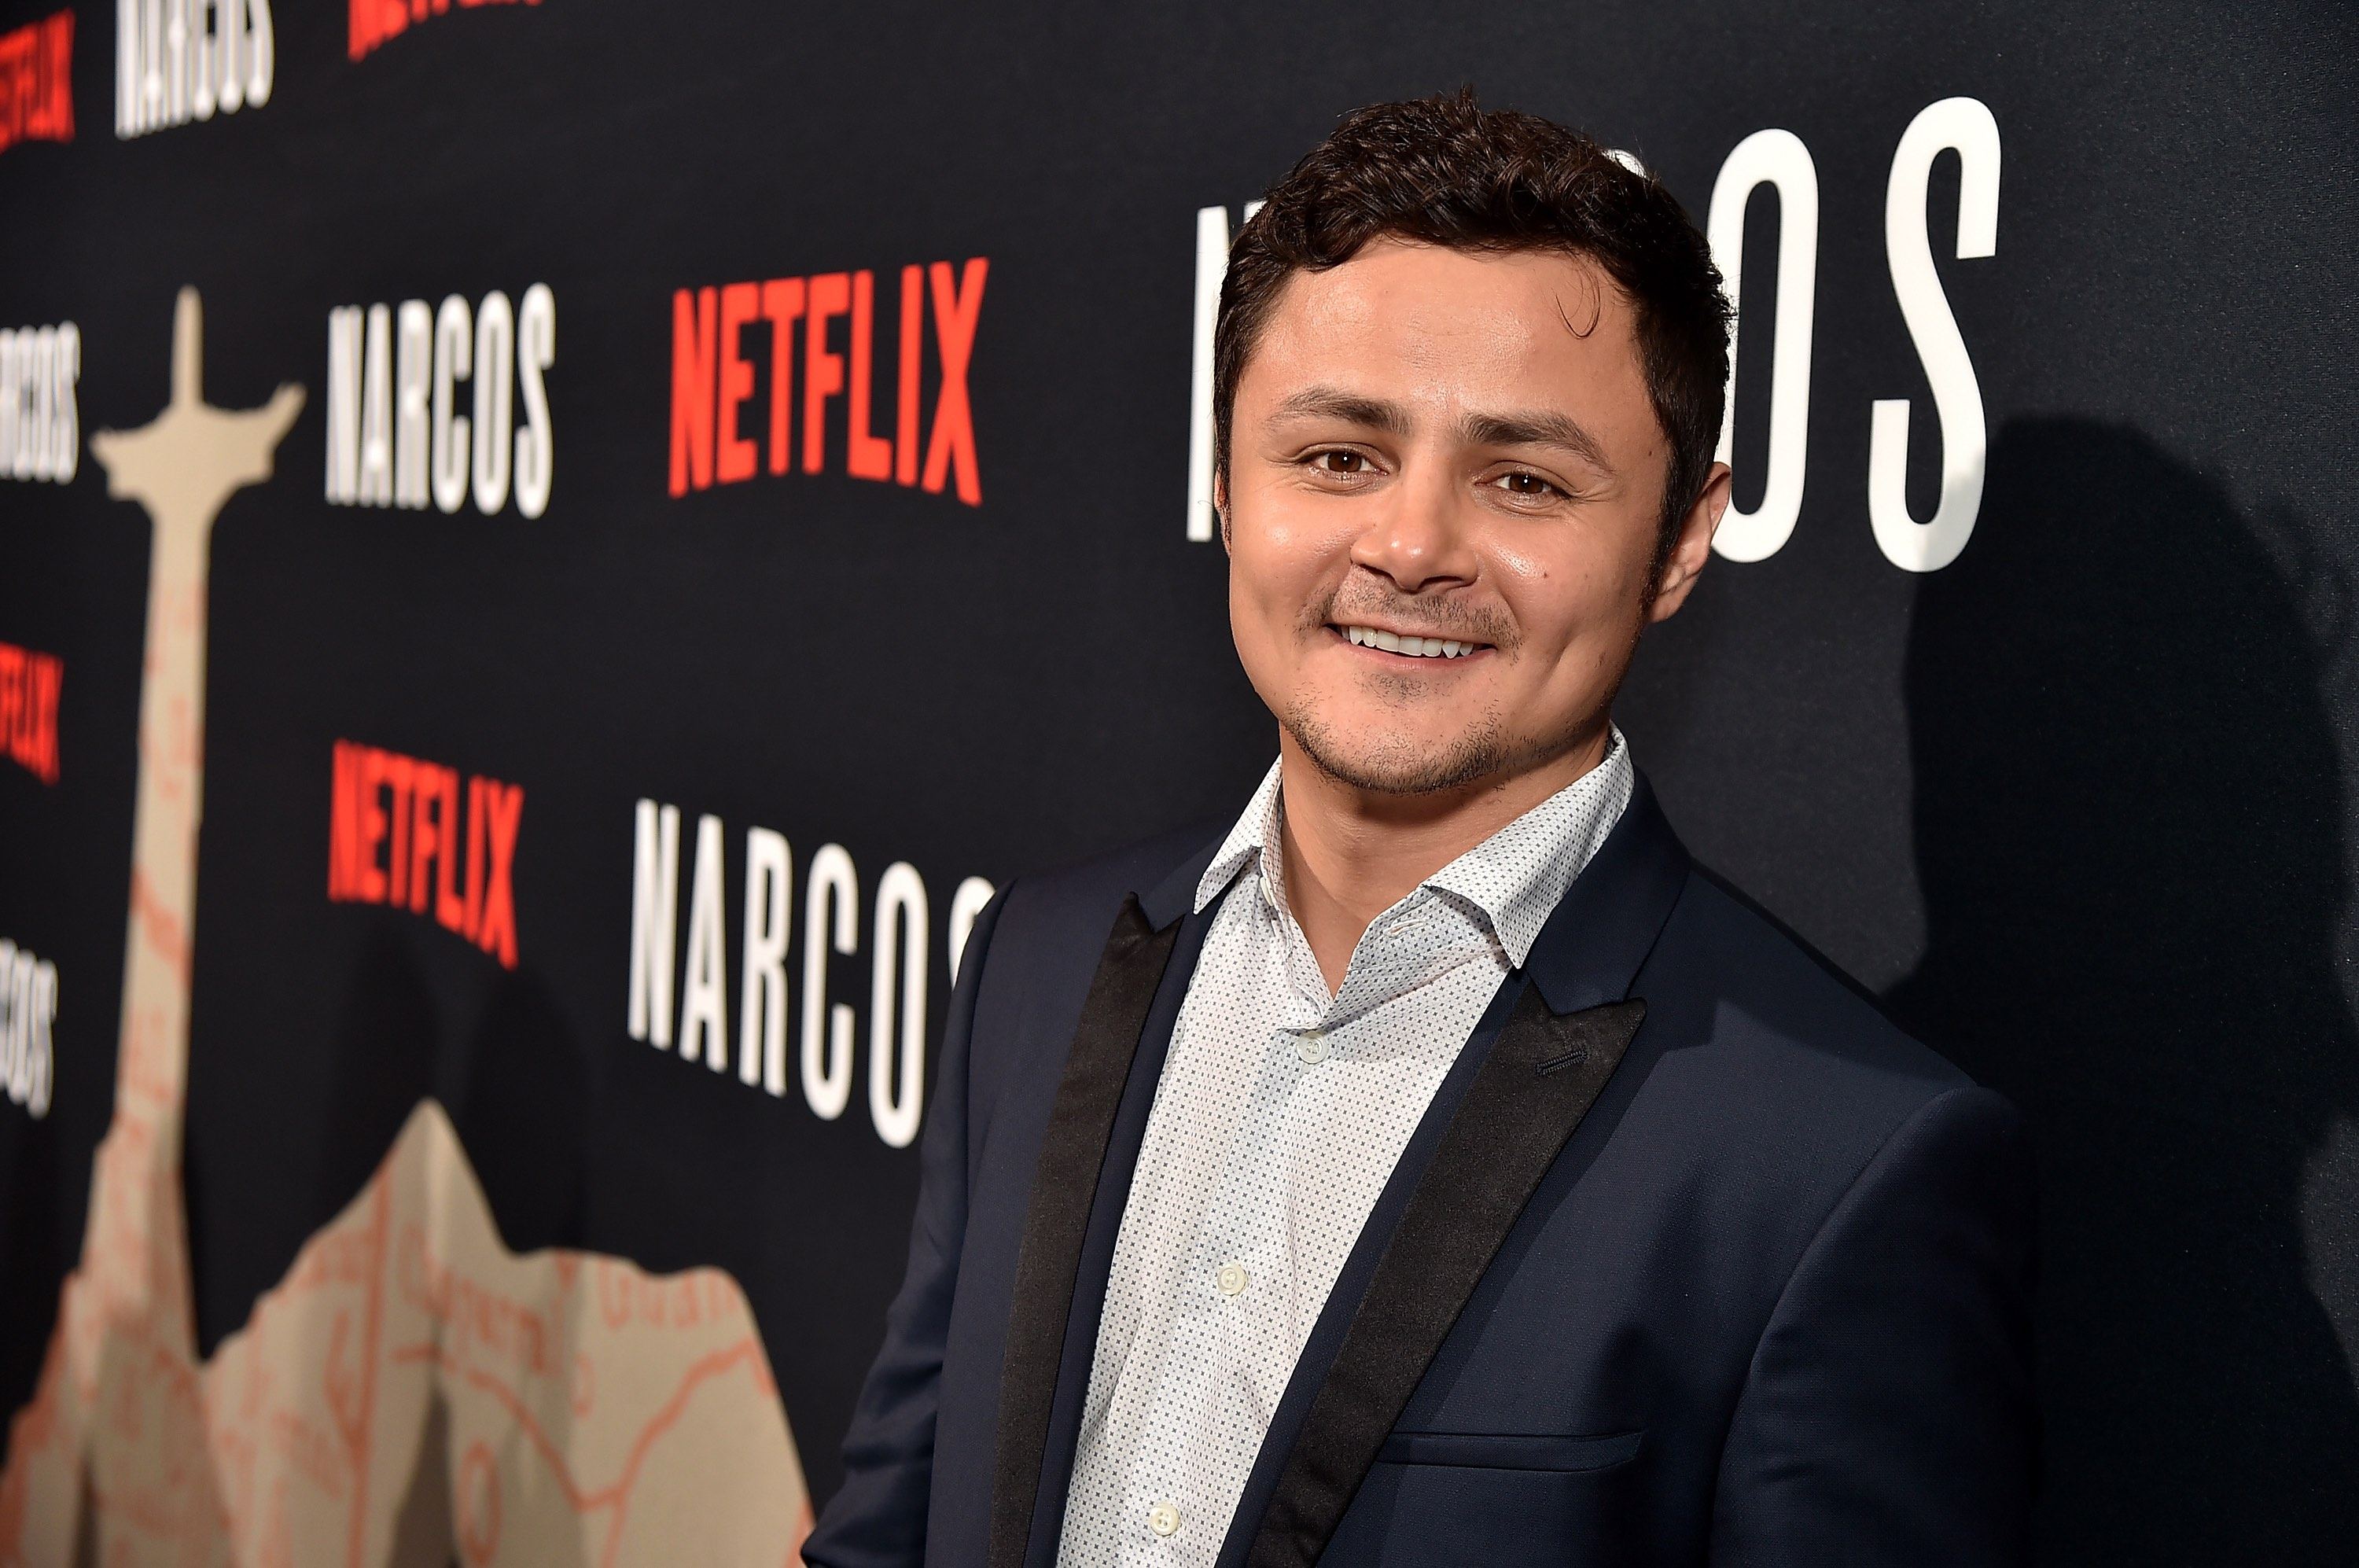 'Broad City's Arturo Castro Gets His Own Show on Comedy Central